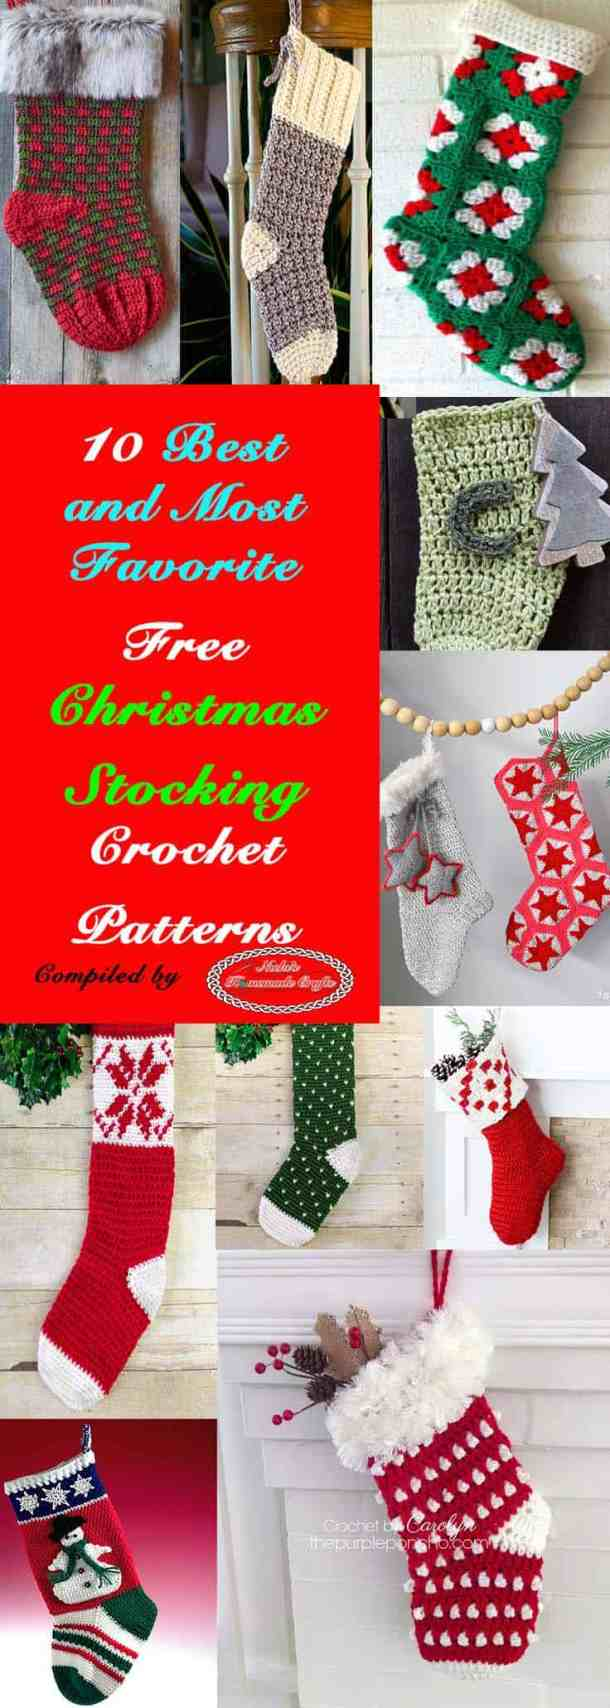 10 best and most favorite christmas stocking free corchet patterns by nickis homemade crafts crochet